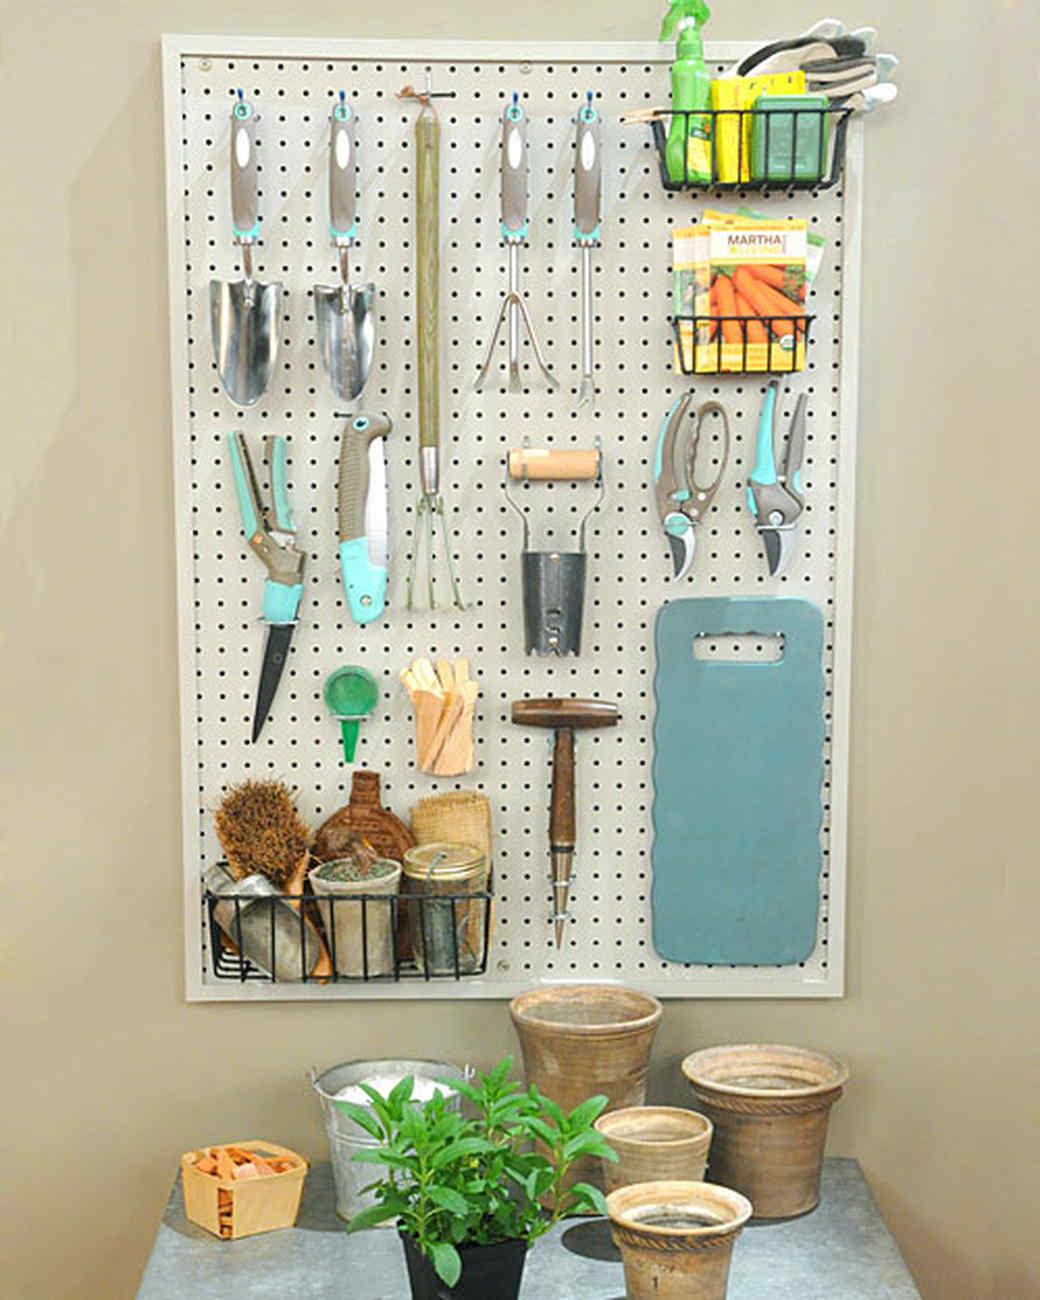 6143_042611_pegboard_craft.jpg